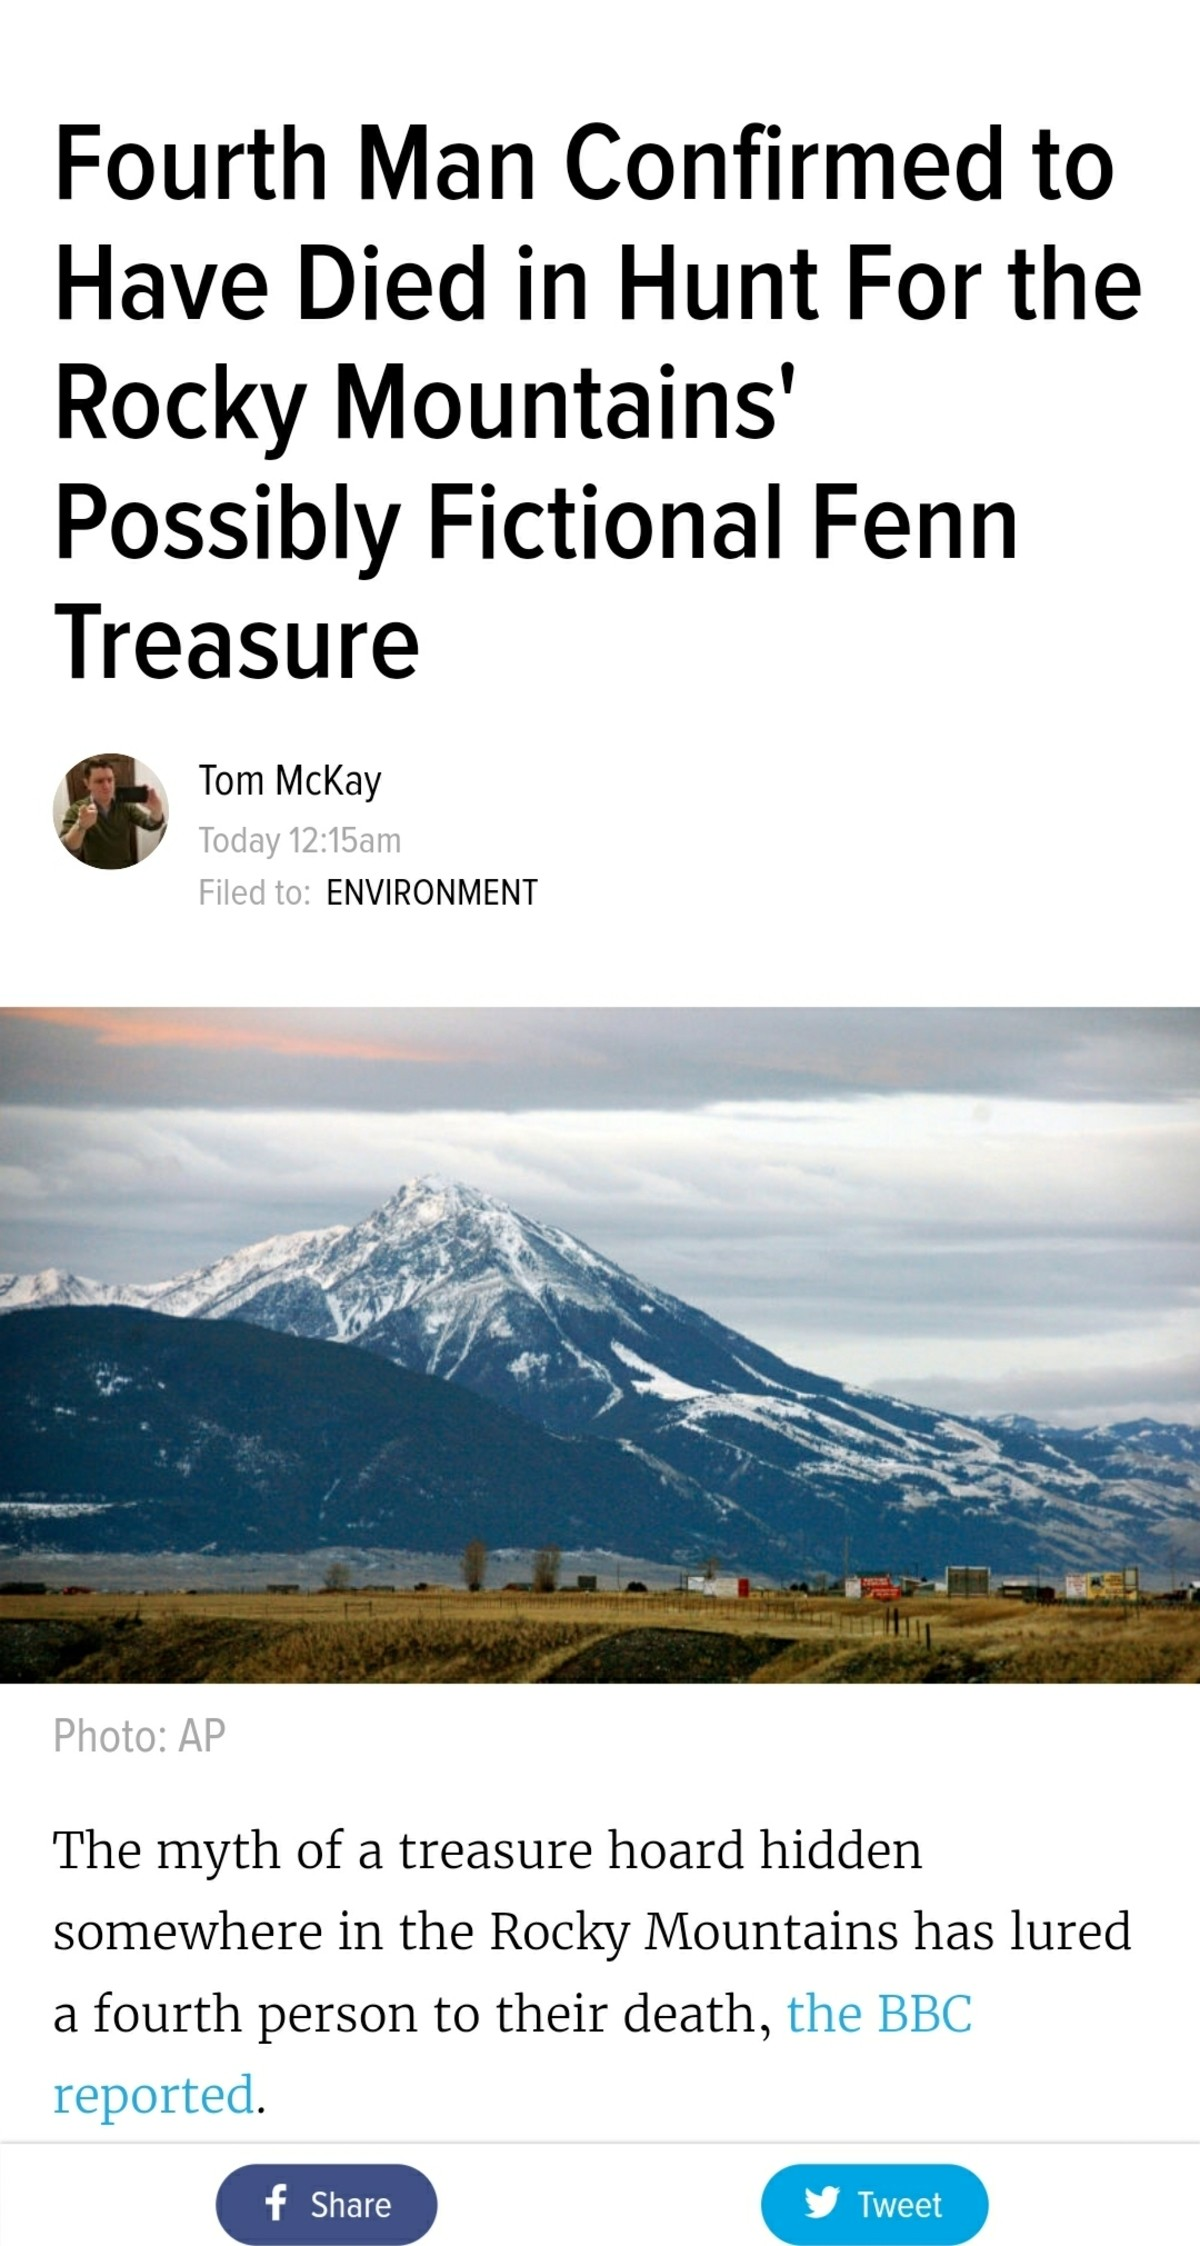 4th Man Dies Seeking Legendary Fenn Treasure. Tide Pods are too low level. This is the real intelligent way to kill yourself. The Fenn Treasure is a treasure re